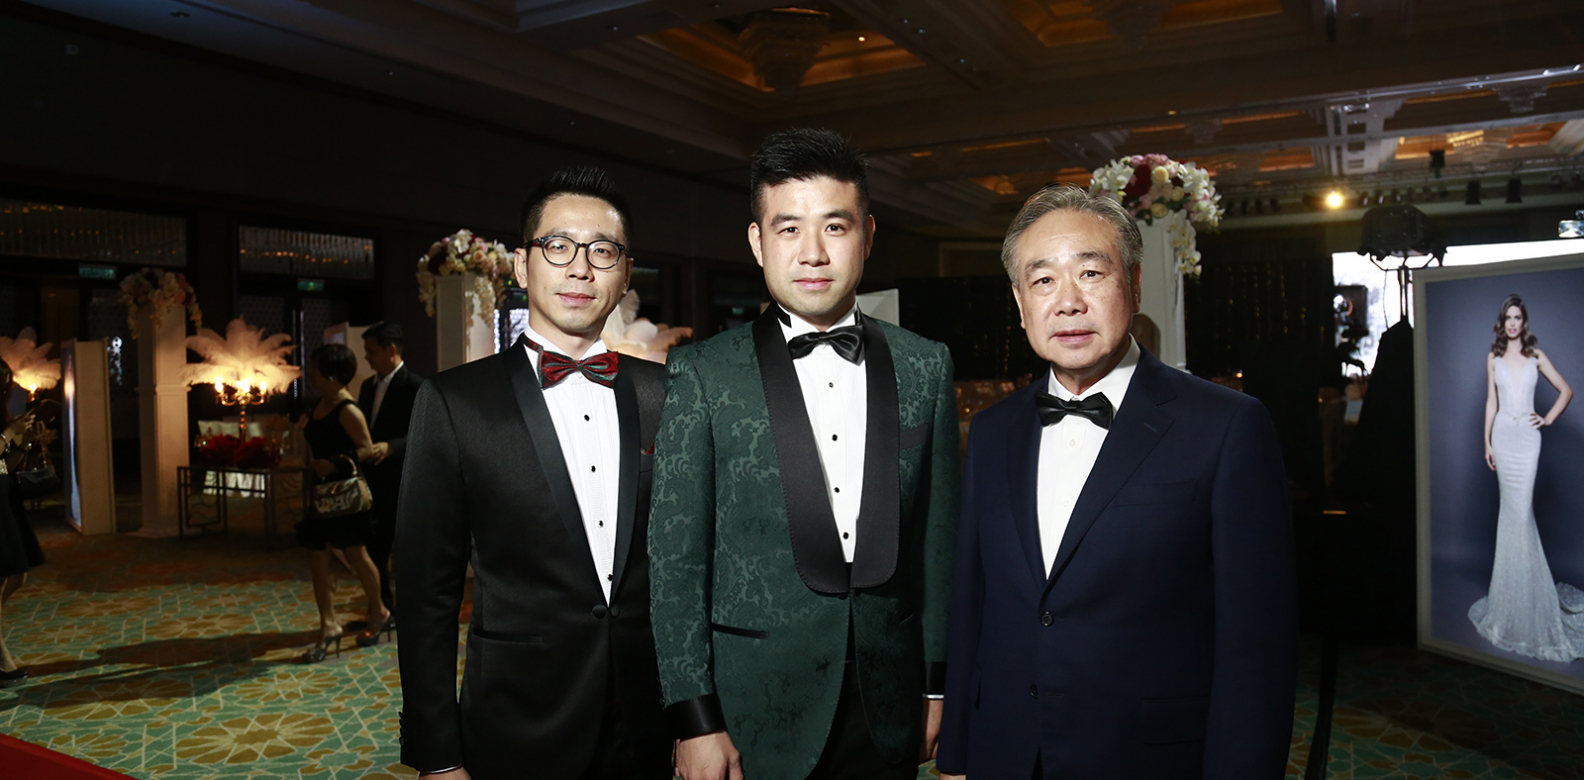 Melvin Chau, Brandon Chau and TC Chau